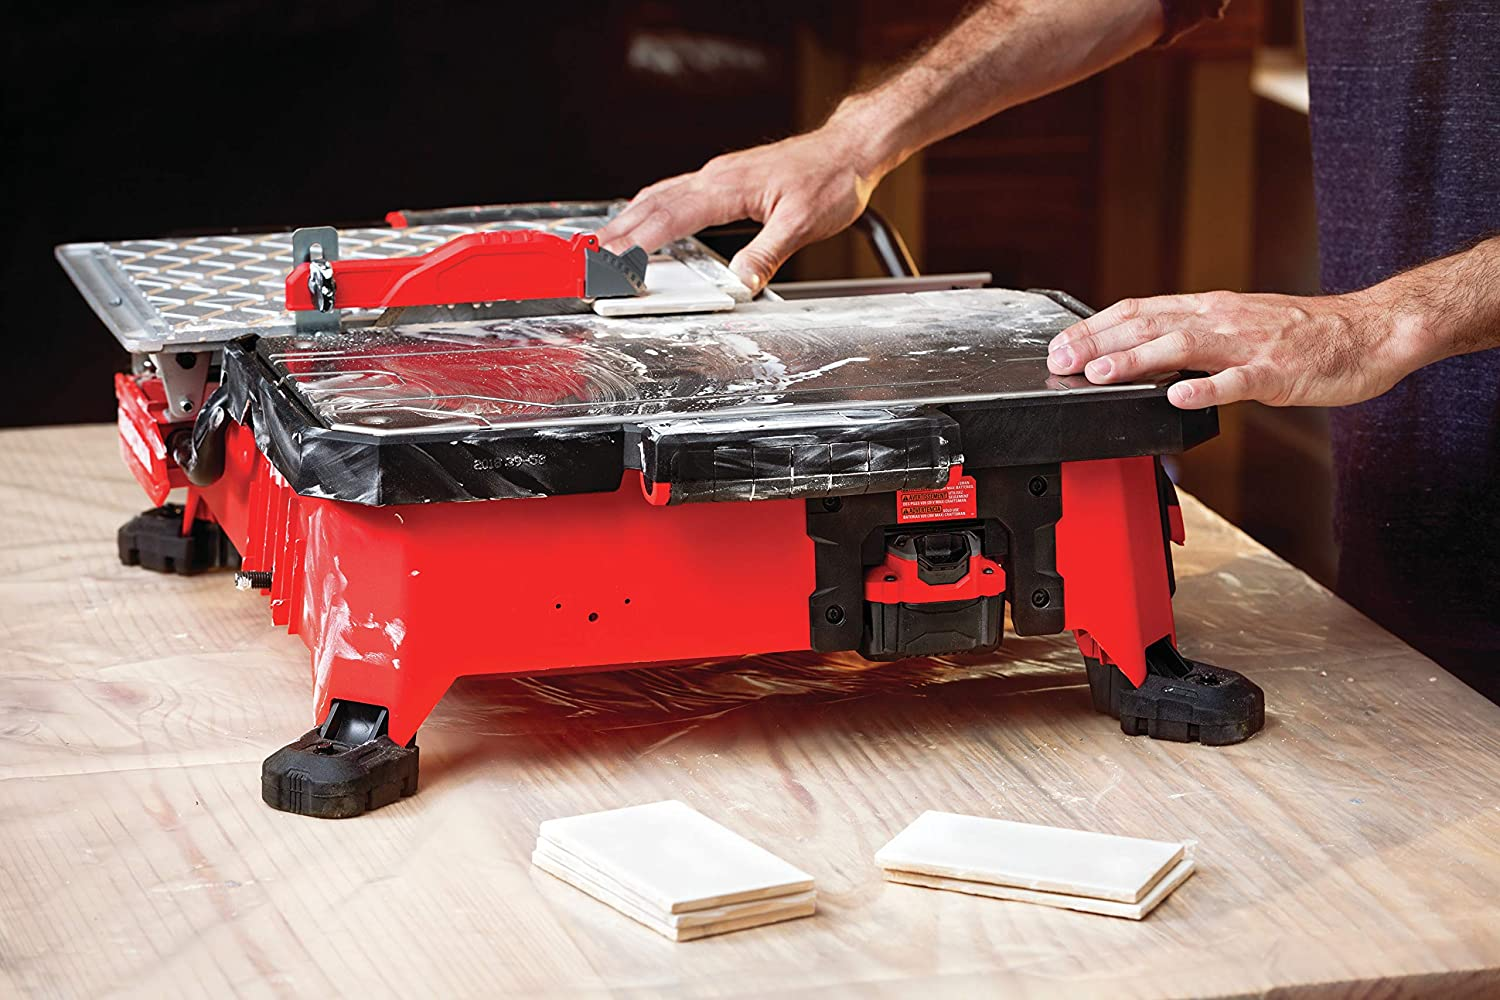 Craftsman 20V Max table saw with compact sliding